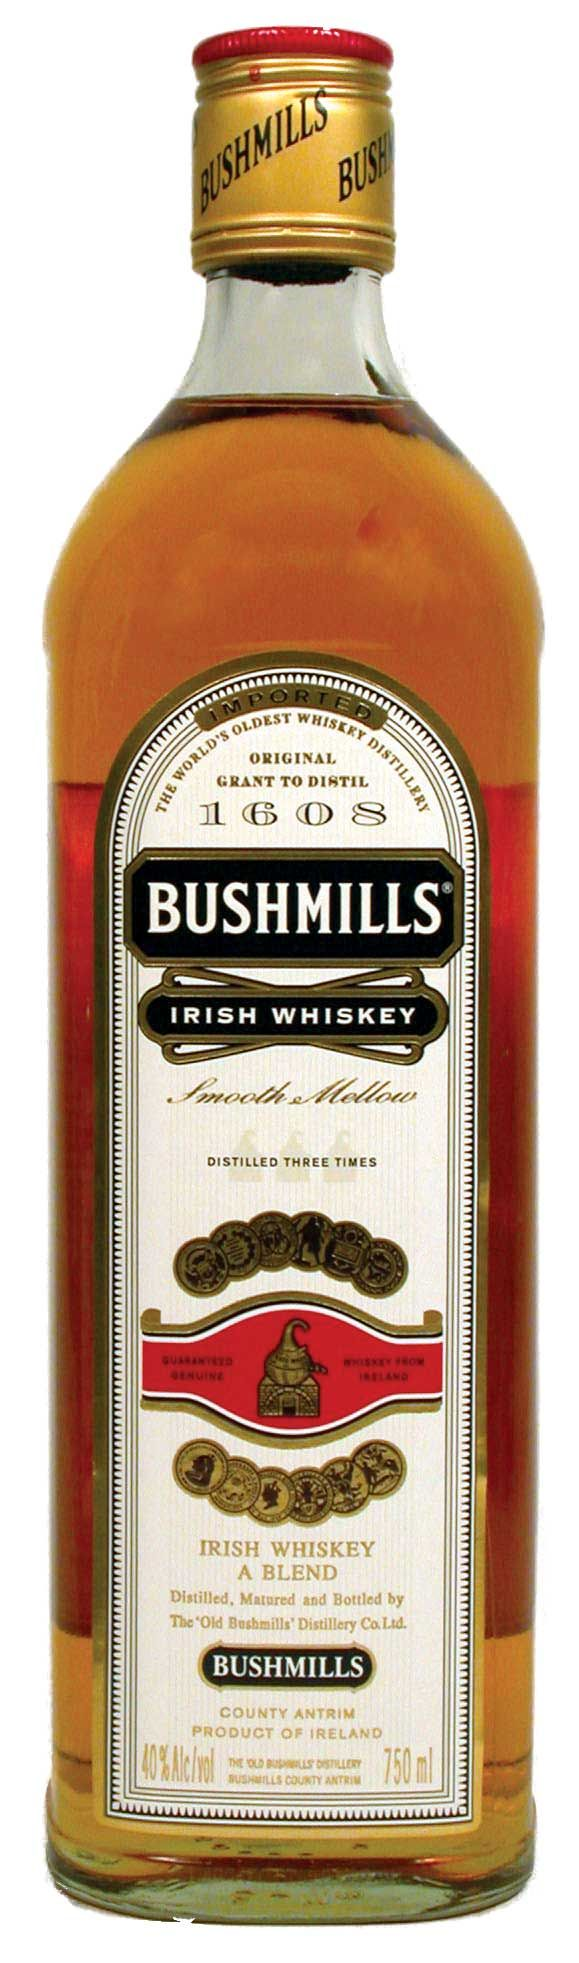 Bushmills Irish Whiskey. Don't know if it's the best there is but it's pretty good.